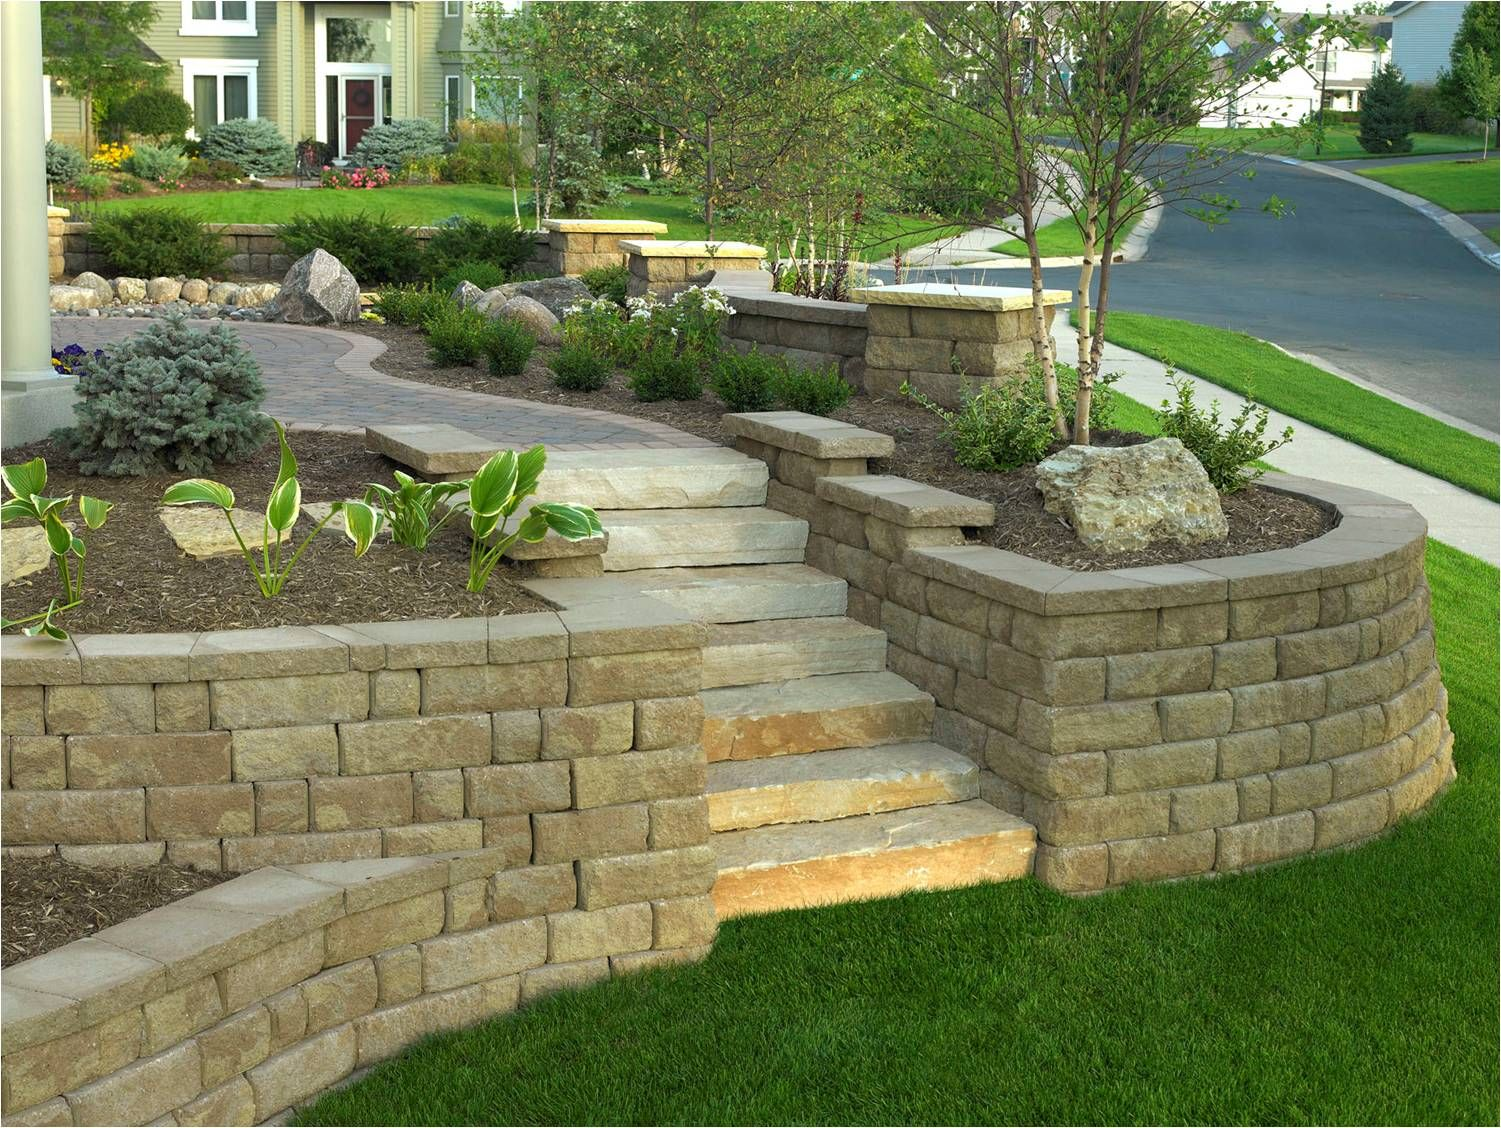 Garden Block Wall Ideas how to build a block retaining wall Concrete Block Retaining Wall Bing Images